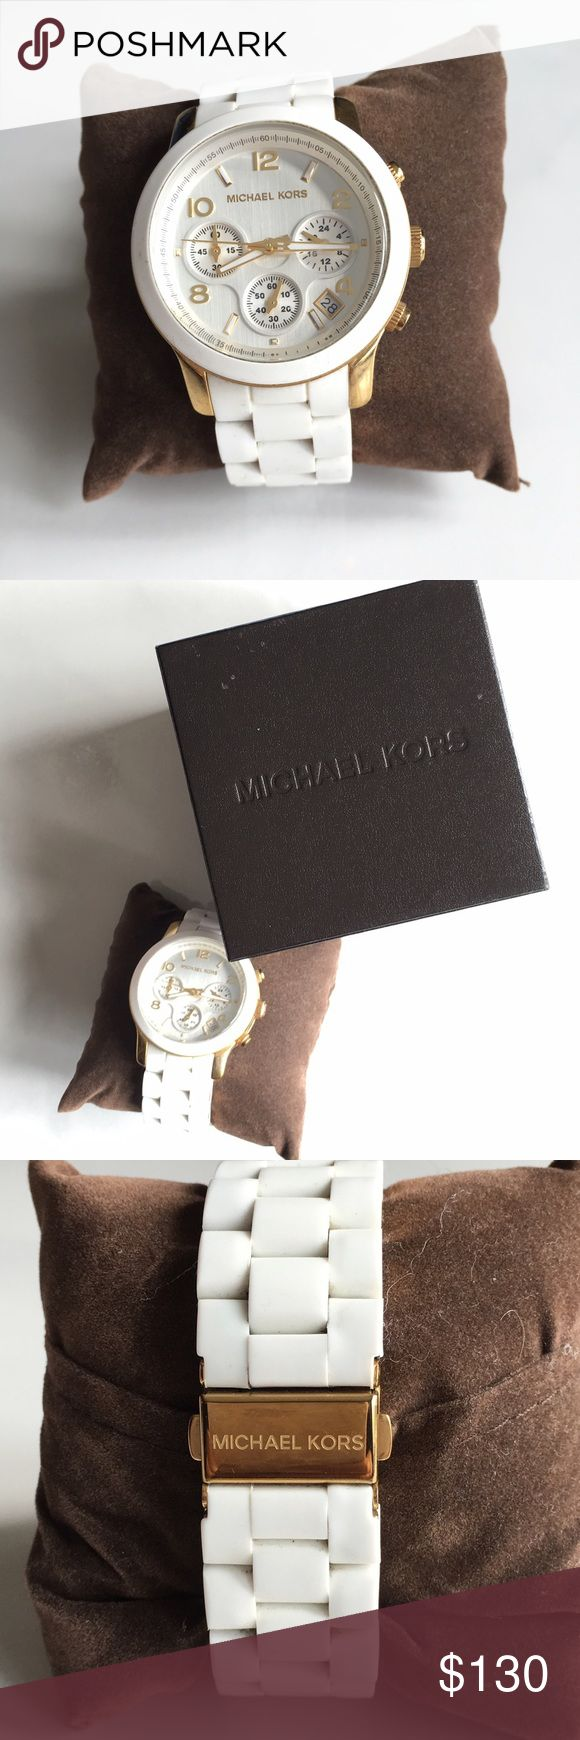 Michaels Kors white watch Michael Kors rubber strap triple chronograph watch. Retails for $250. Michael Kors Accessories Watches